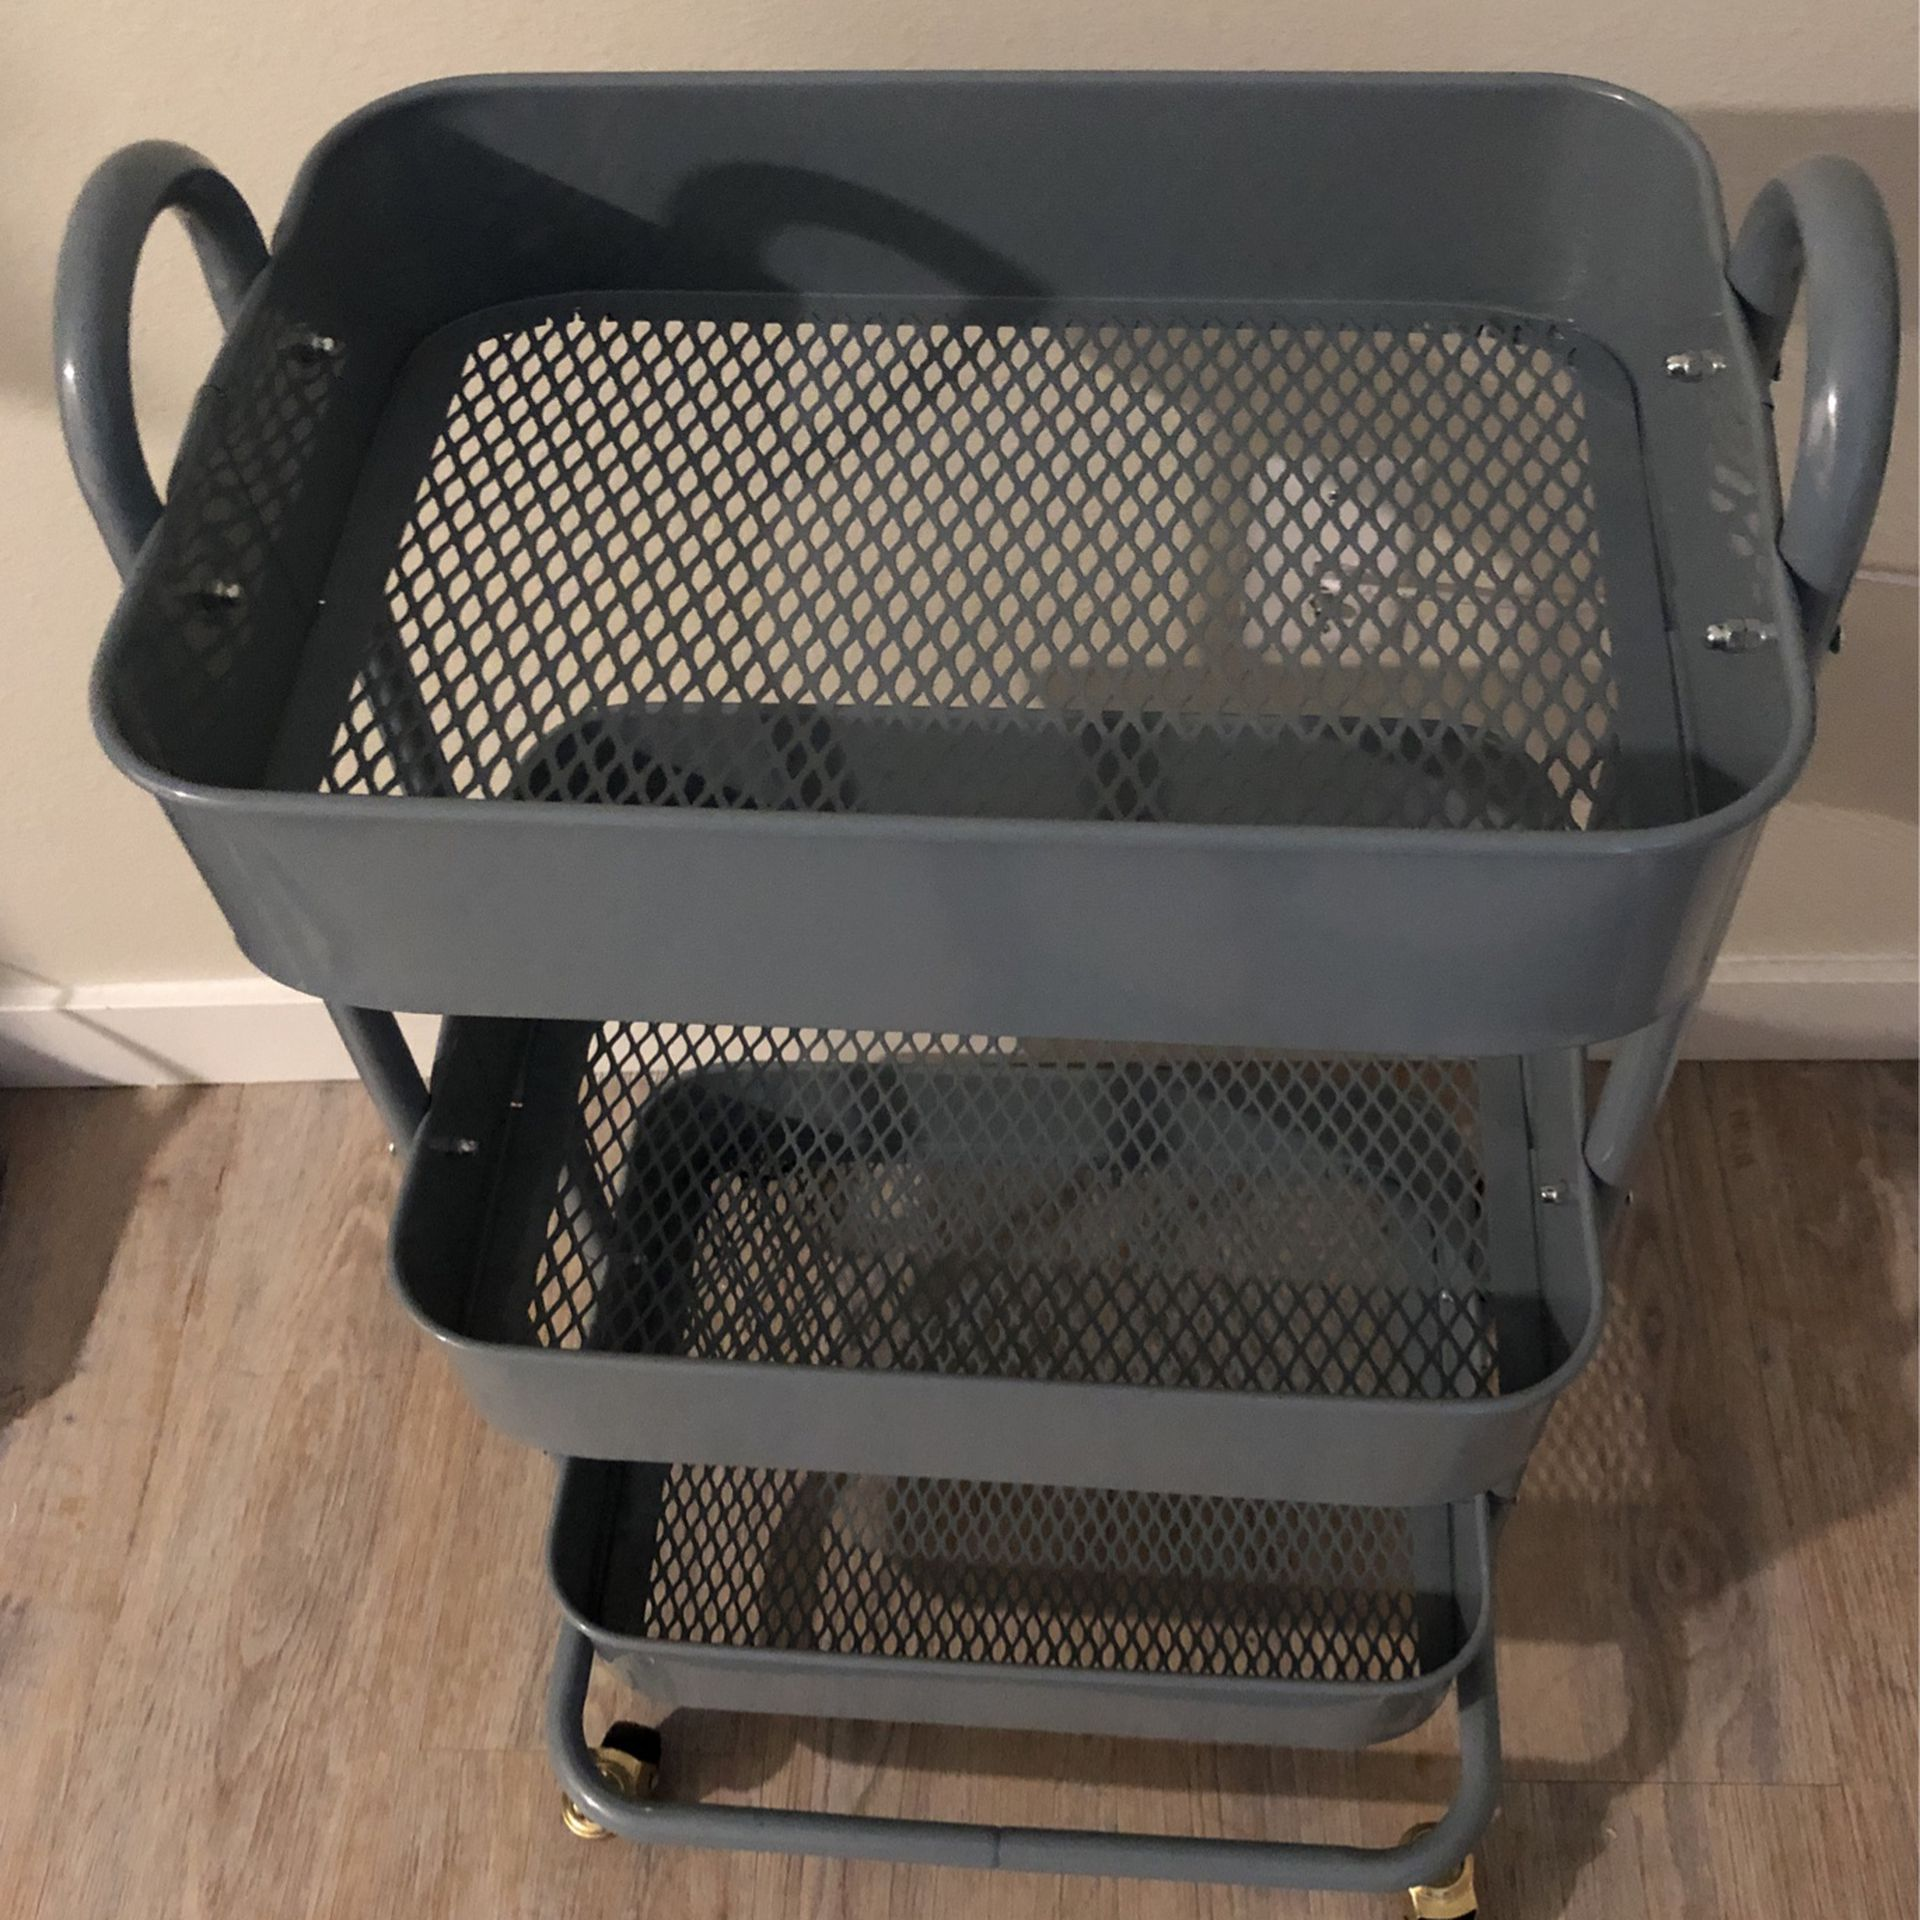 Blue 3-tiered utility cart, medium sized with wheels